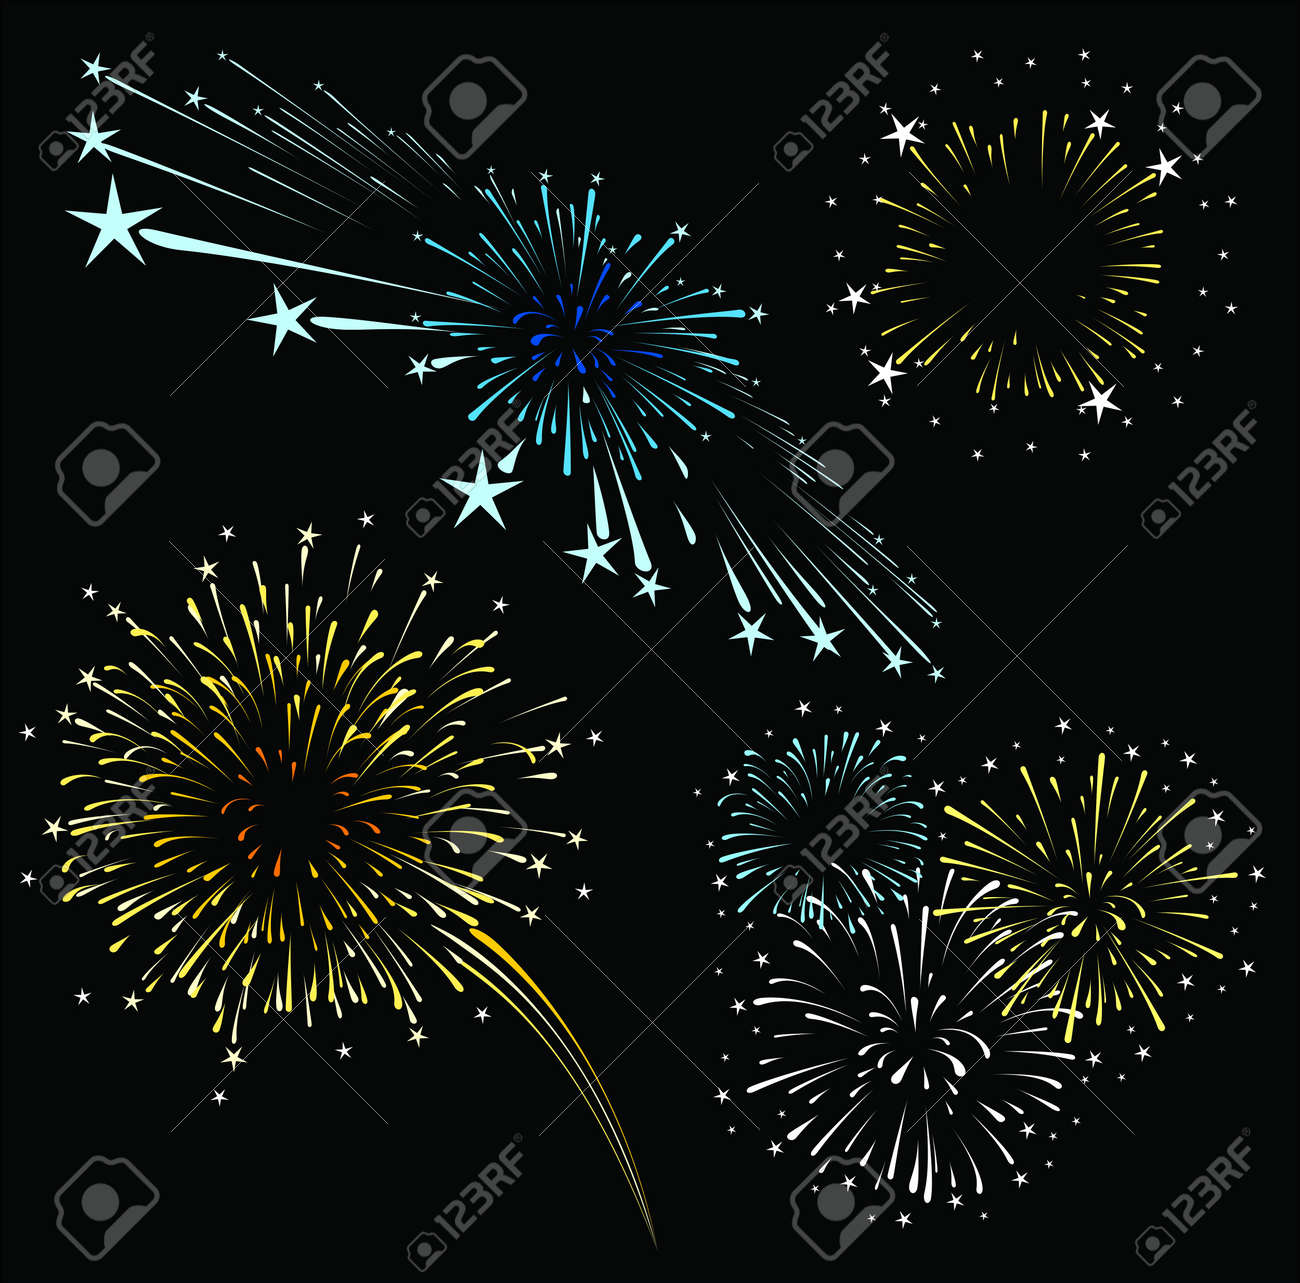 set of fireworks isolated on black background,  format very easy to edit, solid colors whitout gradients Stock Vector - 15160511